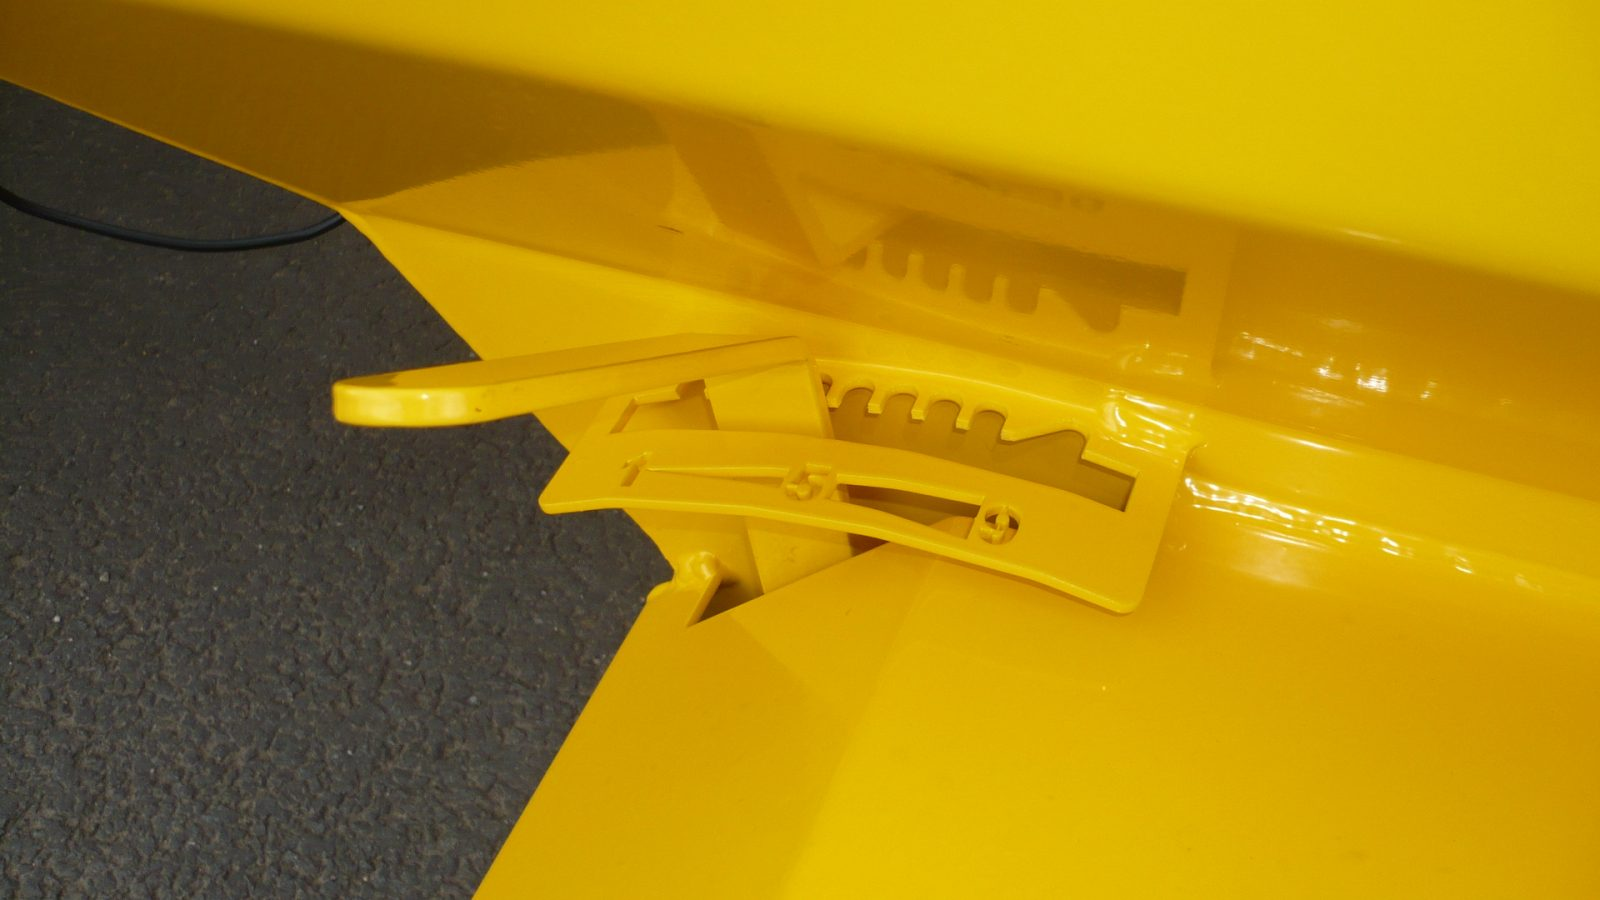 TS80 Towed or Mounted Drop Gritter has manually adjustable application rates via a graduated lever